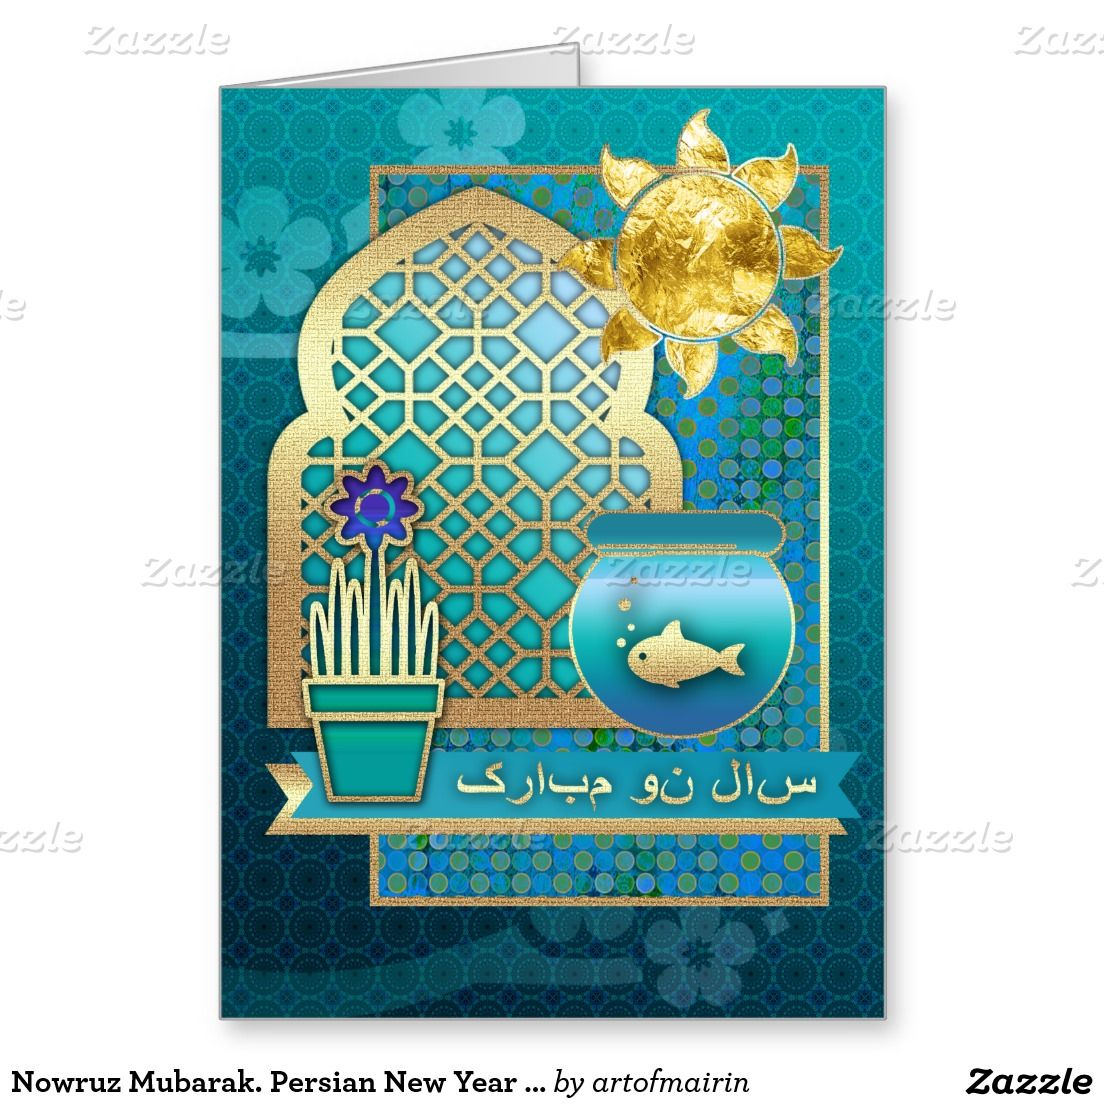 wruz mubarak happy nowruz muslim spring shop nowruz mubarak persian new year party invitations created by artofmairin kristyandbryce Gallery